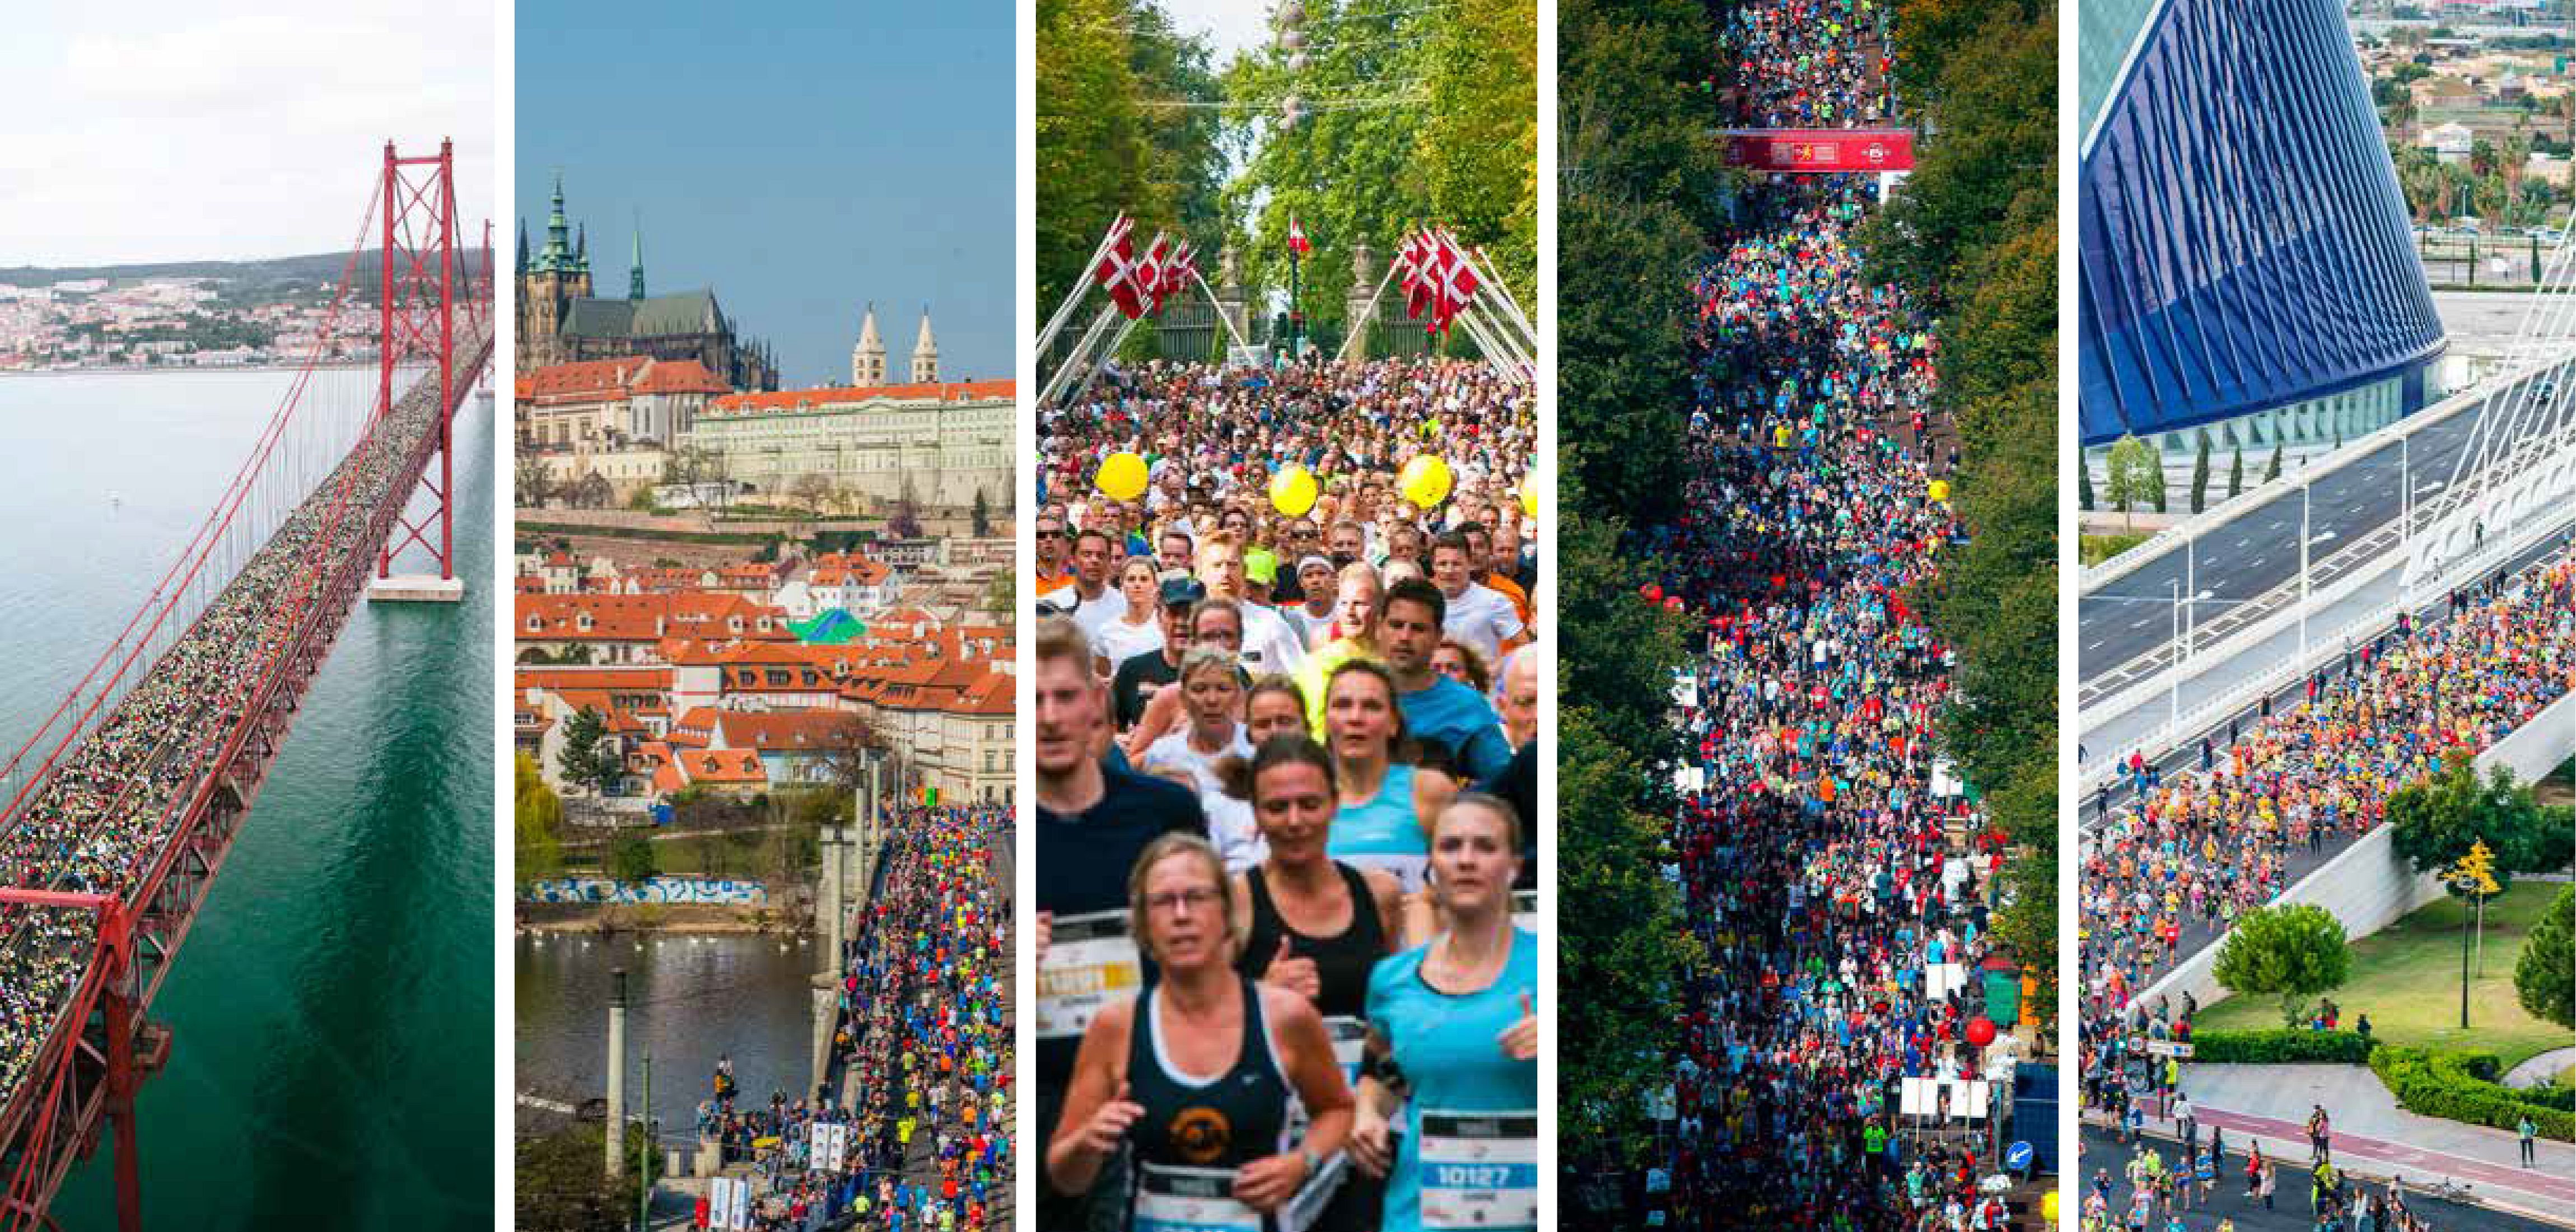 Five of the World's Leading Half Marathons have Partnered to Create the New SuperHalfs International Running Series